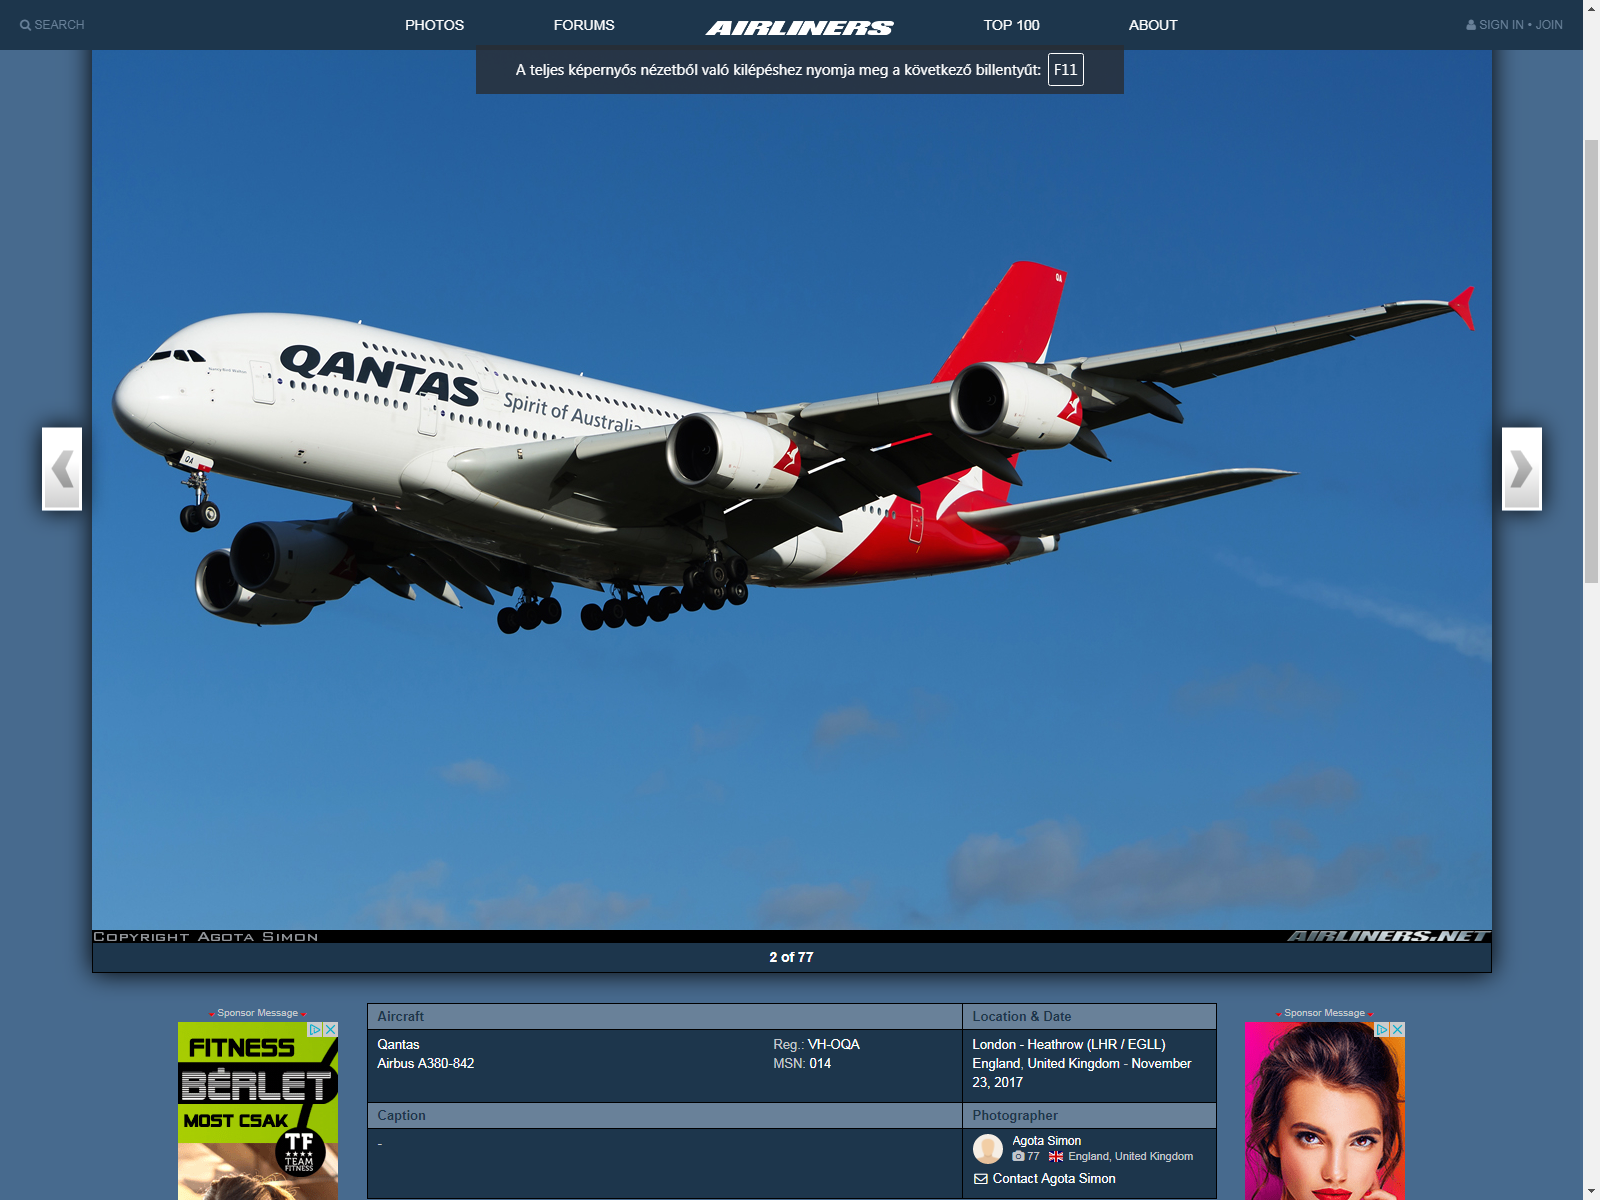 My second accepted photo on Airlinersnet.